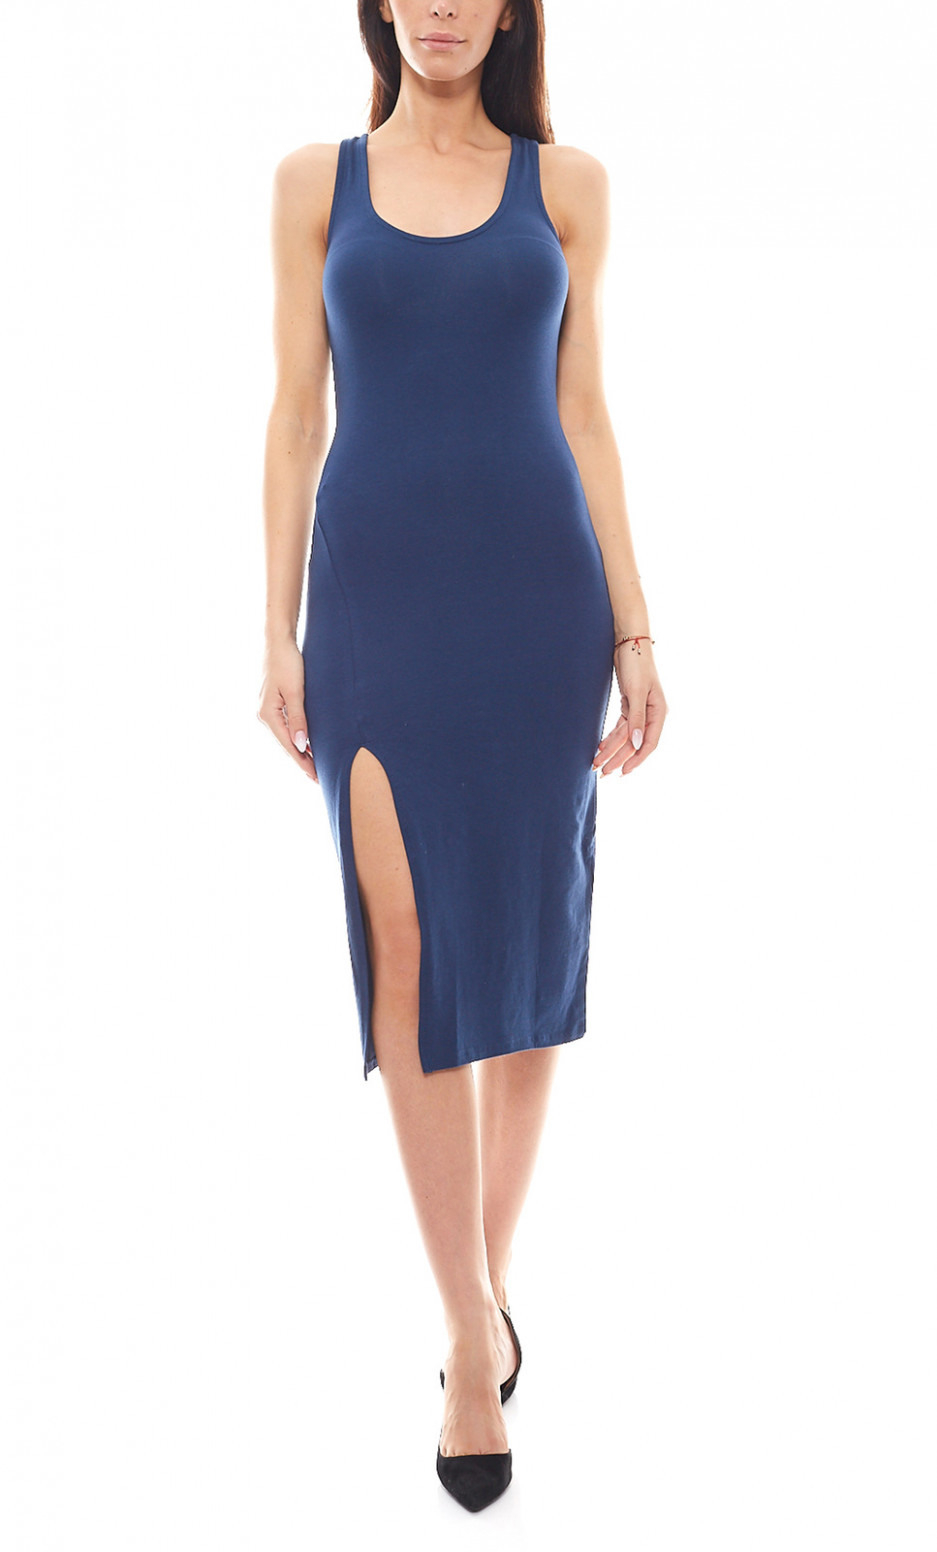 Funky Buddha Party Kleid Eng Anliegendes Jerseykleid Mit